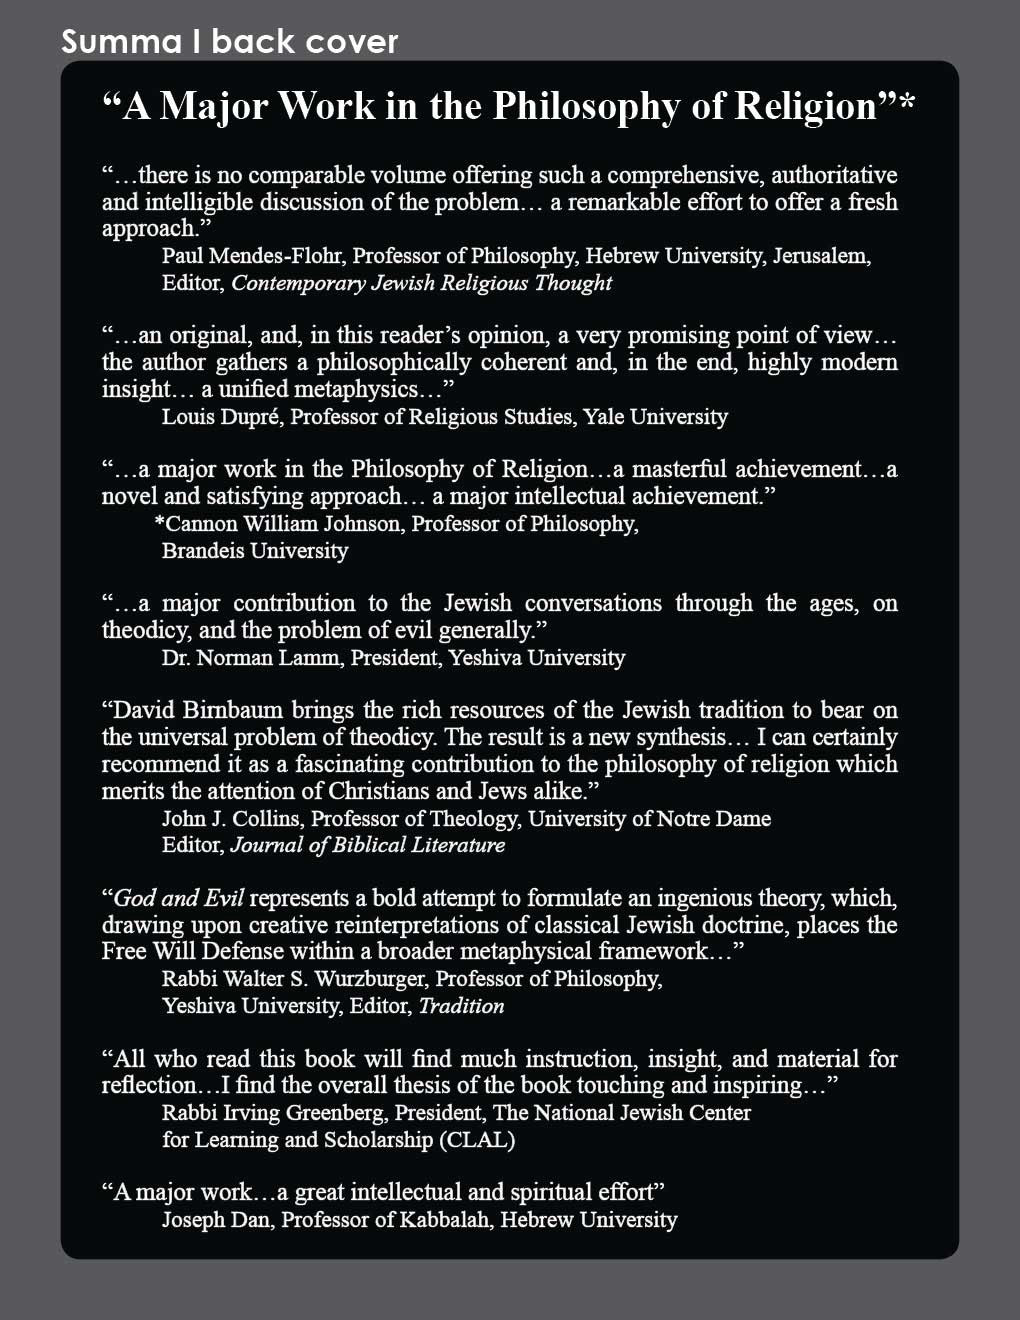 David Birnbaum Summa Metaphysica philosophy | Summa Metaphysica Book 1 Back cover. A Major Work in the Philosophy of Relgion